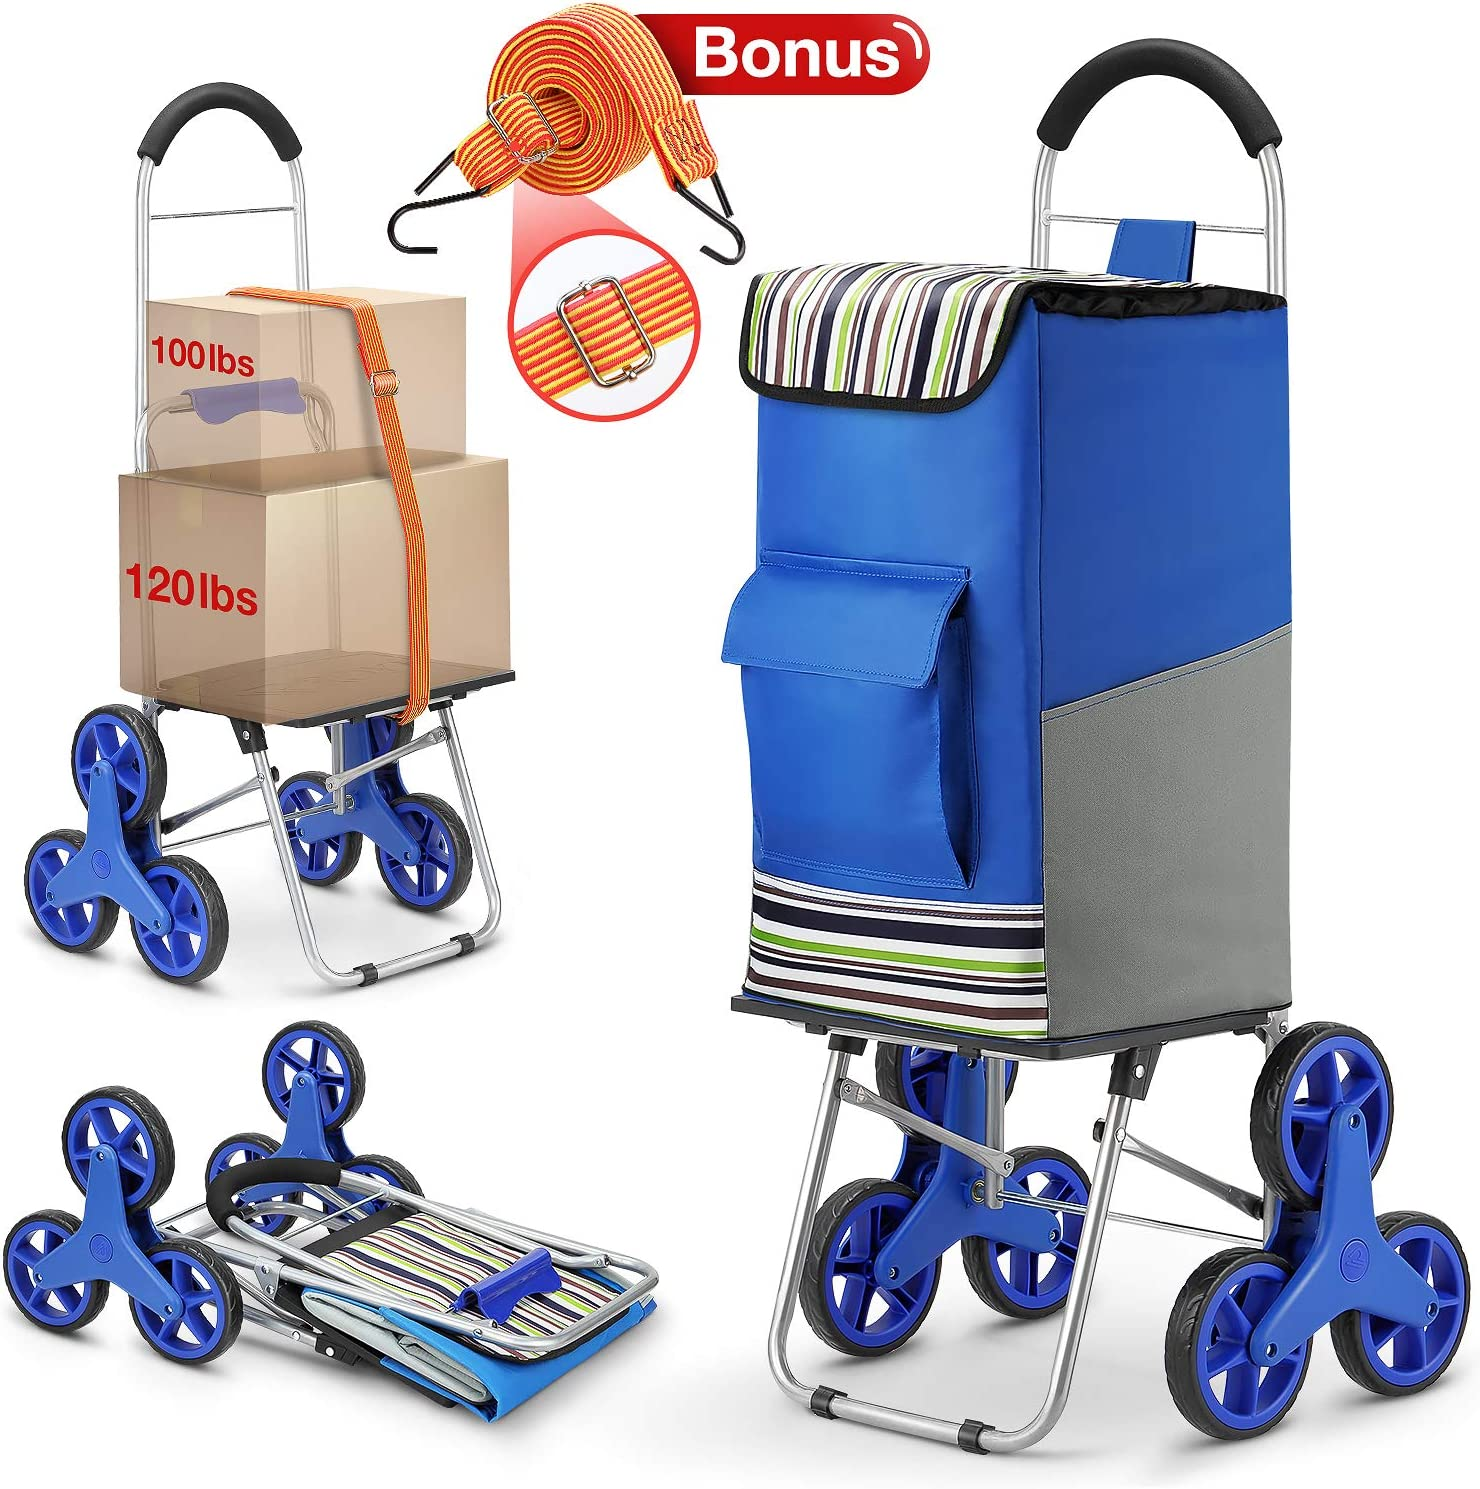 Shopping Cart, Super Loading Stair Climber Cart 220 lbs Capacity Grocery Foldable Cart with Extra Large Shopping Bag Laundry Utility Cart Bonus Adjustable Bungee Cord